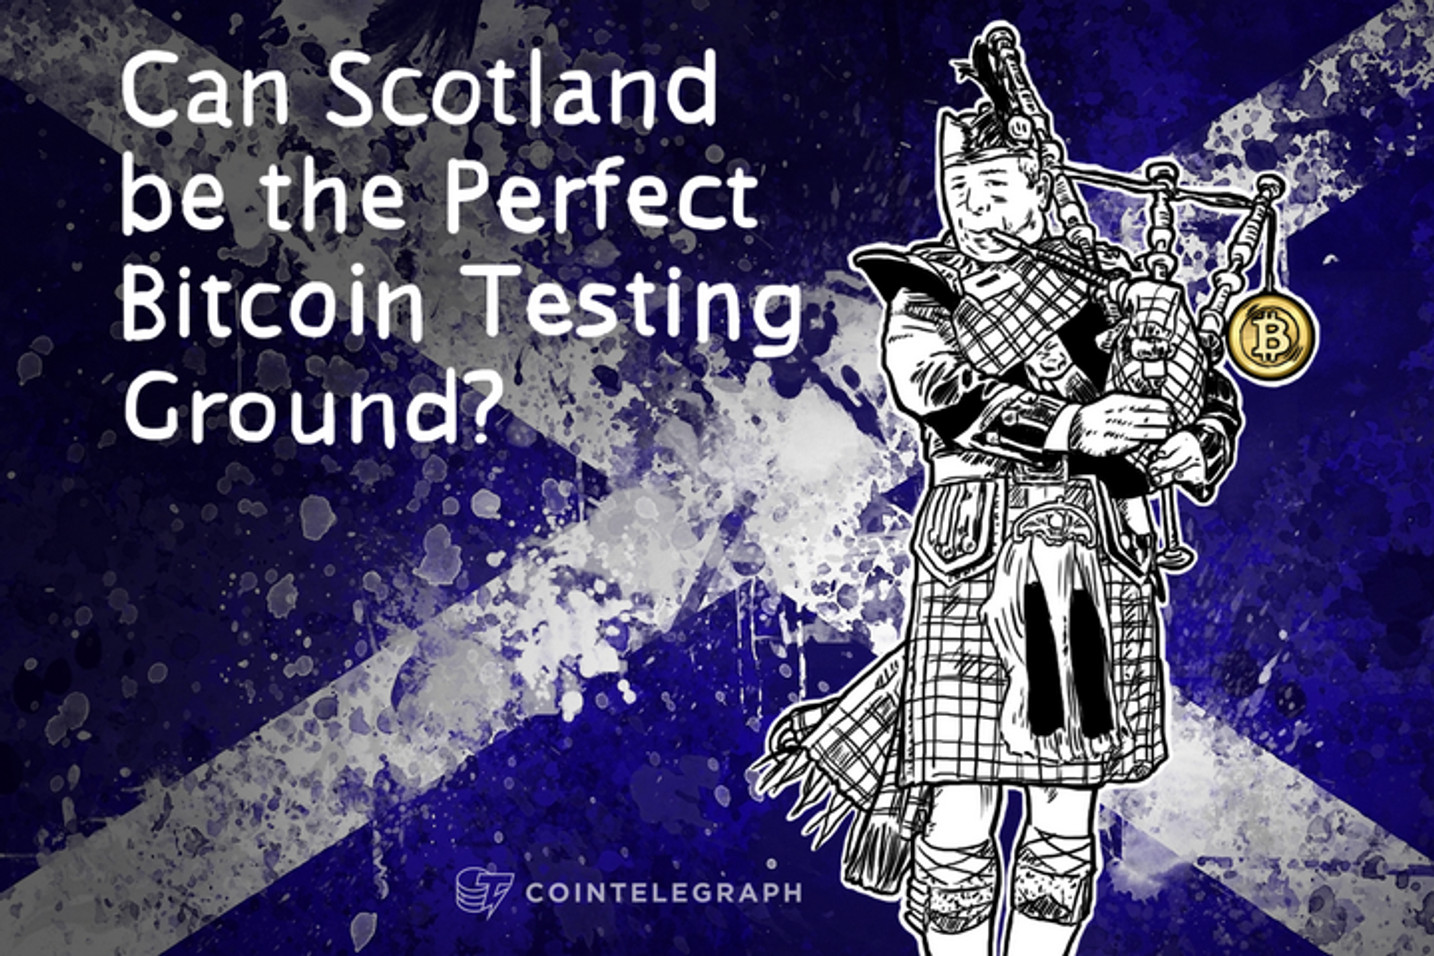 Can Scotland be the Perfect Bitcoin Testing Ground?